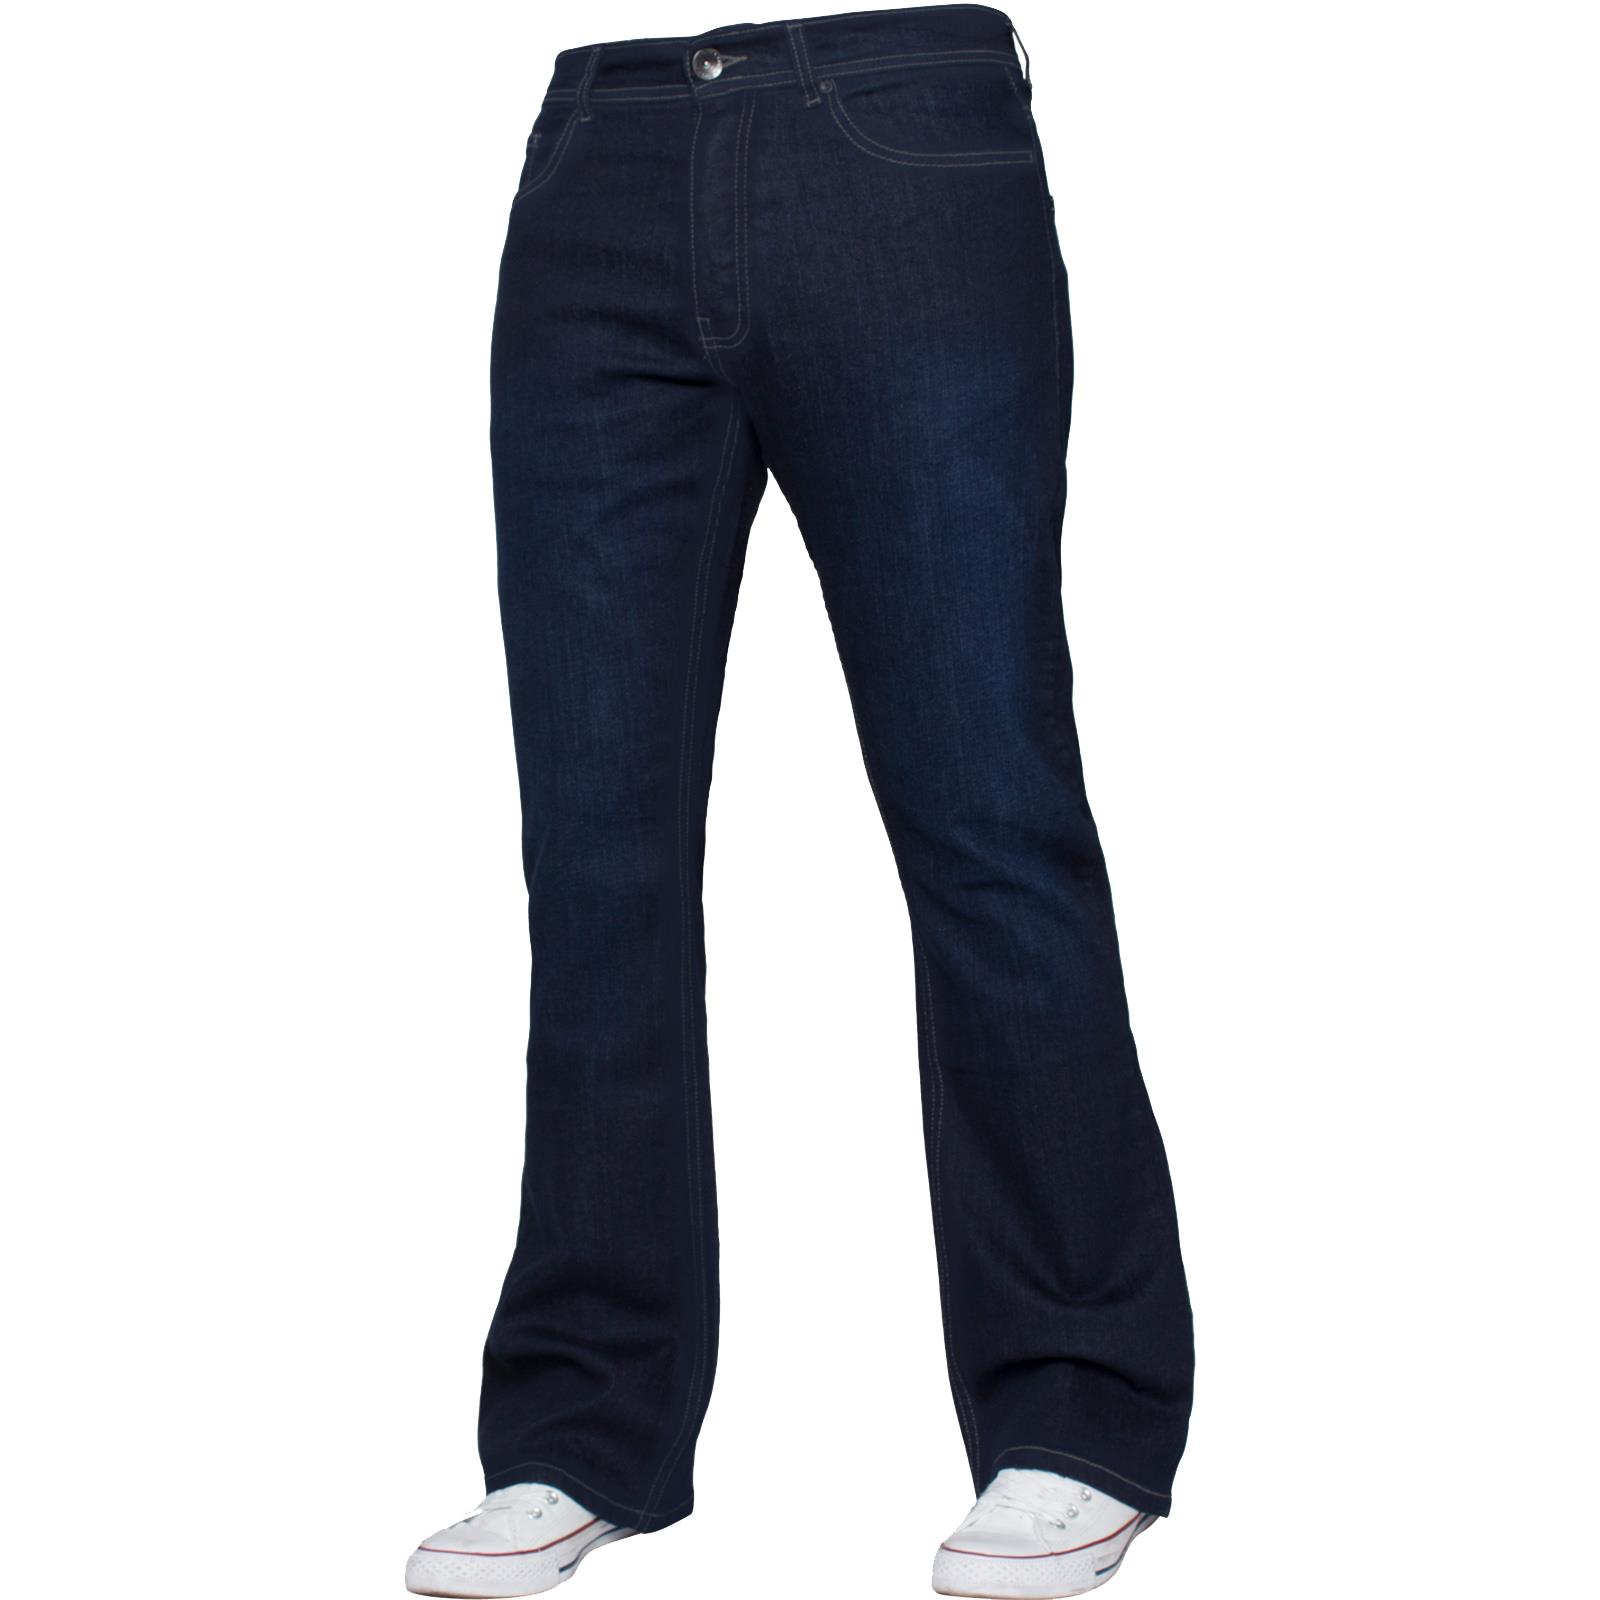 New-Enzo-Mens-Designer-Bootcut-Wide-Leg-Jeans-Flared-Stretch-Denim-All-Waists thumbnail 18